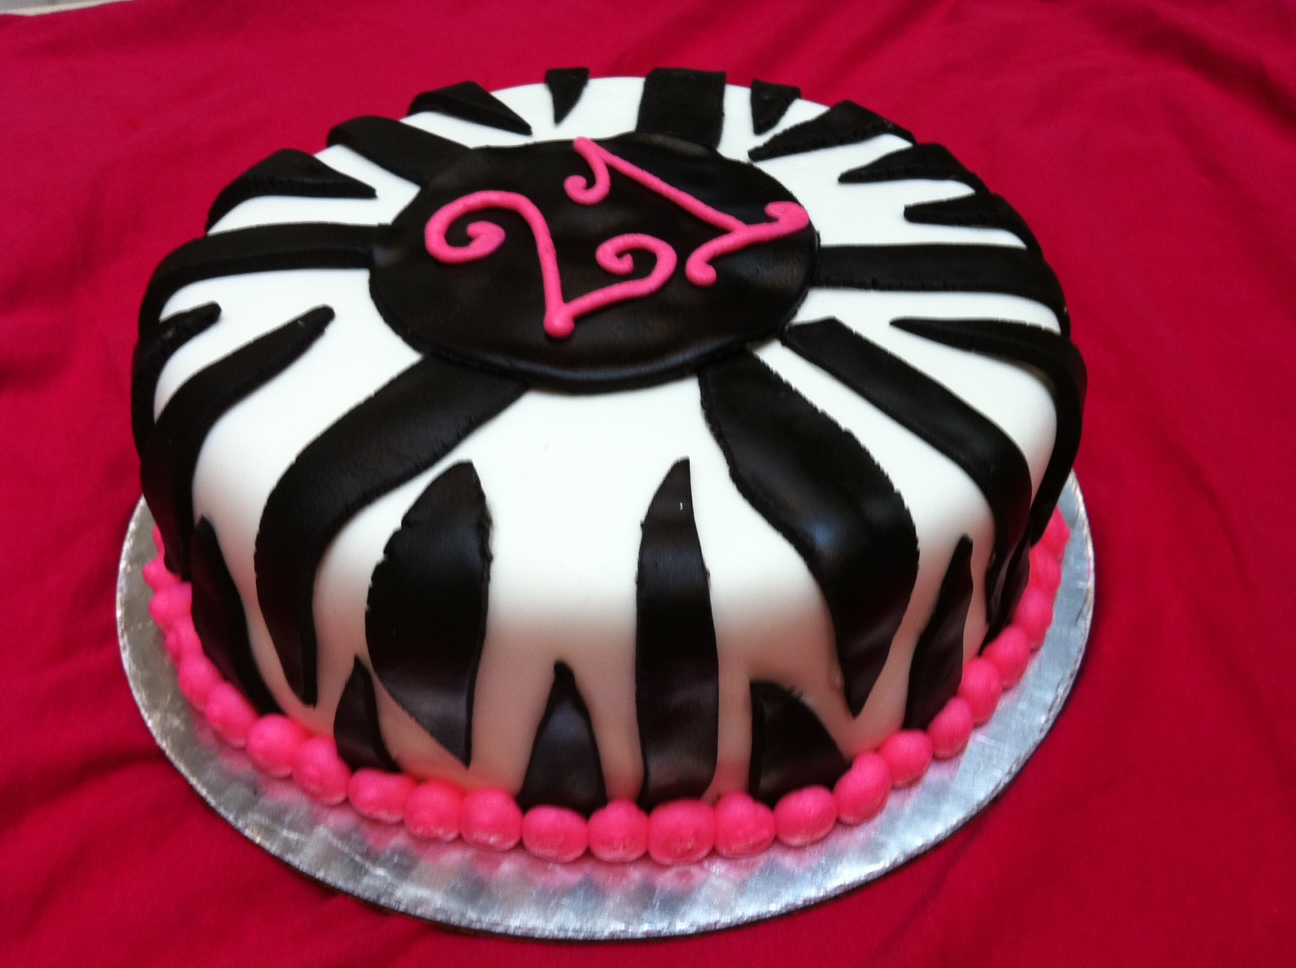 Zebra Cake Design Ideas : Zebra Cakes Cake Ideas and Designs